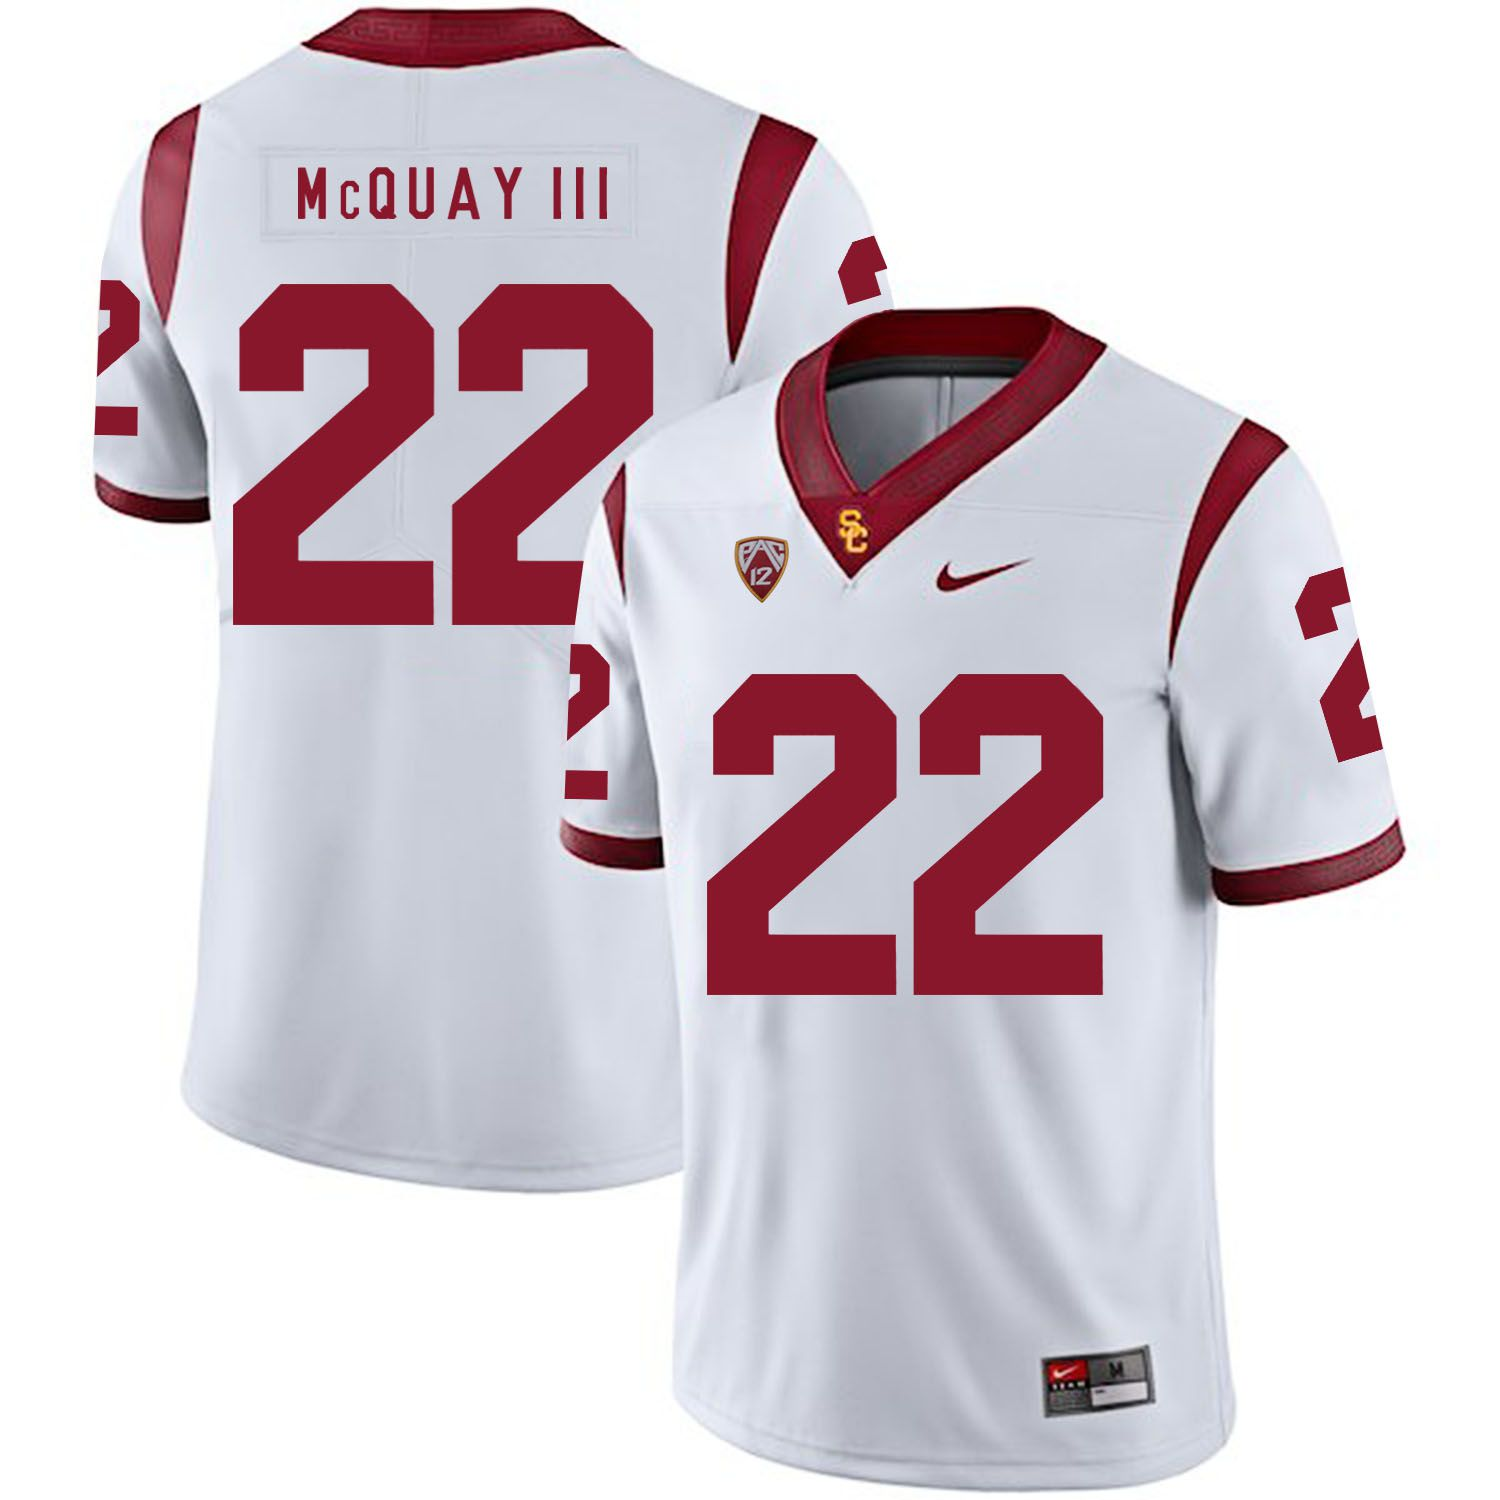 Men USC Trojans 22 Mcquay iii White Customized NCAA Jerseys